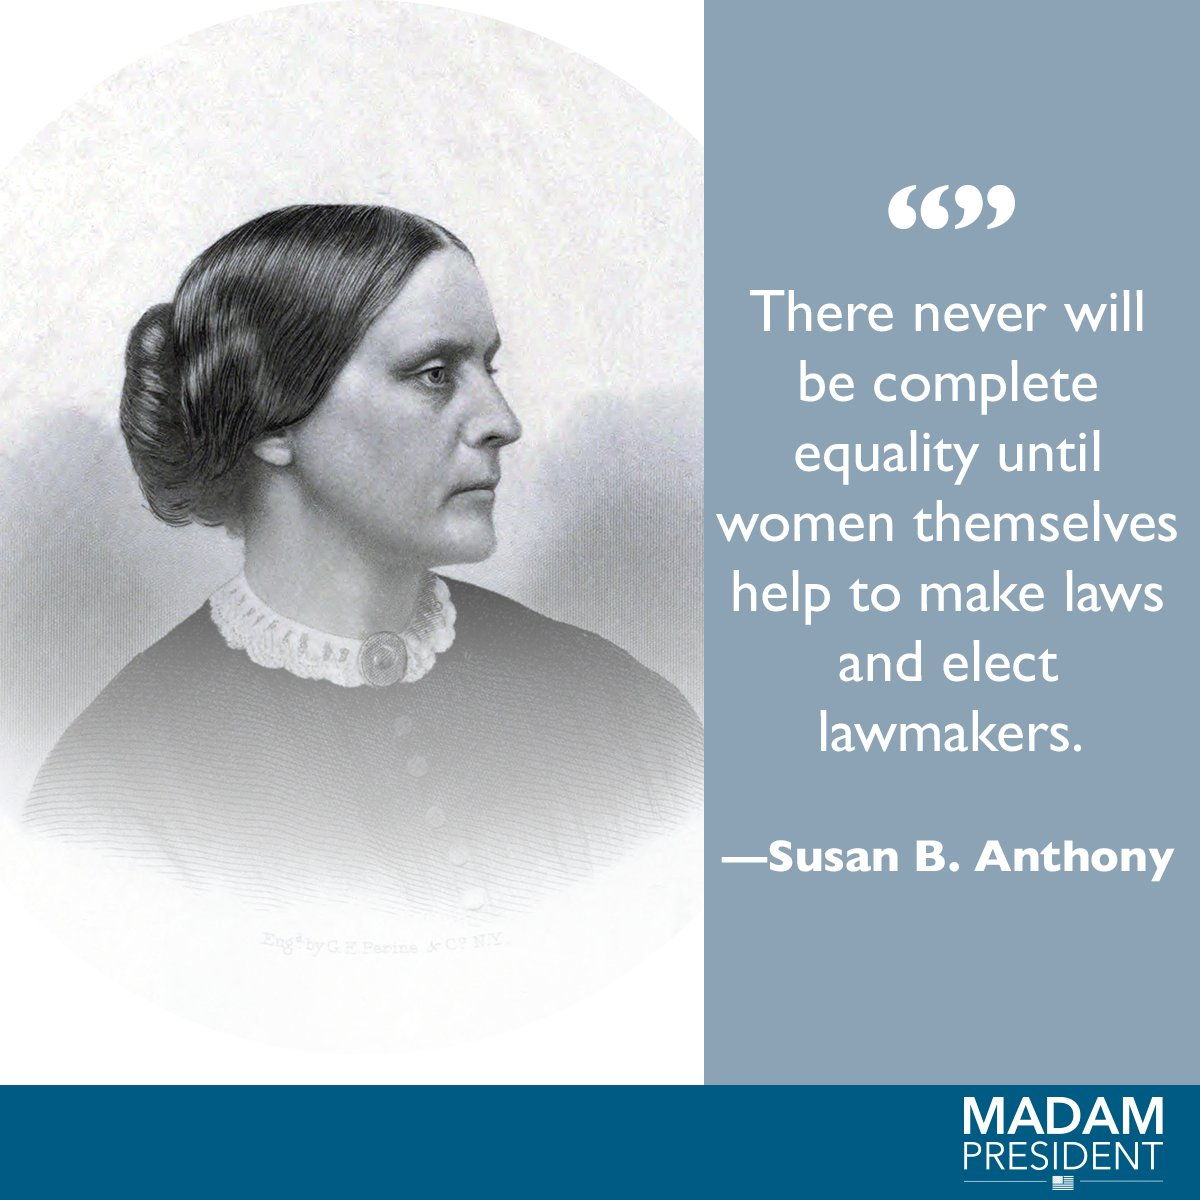 susan b anthony's constitutional argument Argument of hon henry r selden in behalf of susan b anthony, on habeas corpus, before the hon n k hall, united states district judge for the northern district of new york, at albany, january 21, 1873.